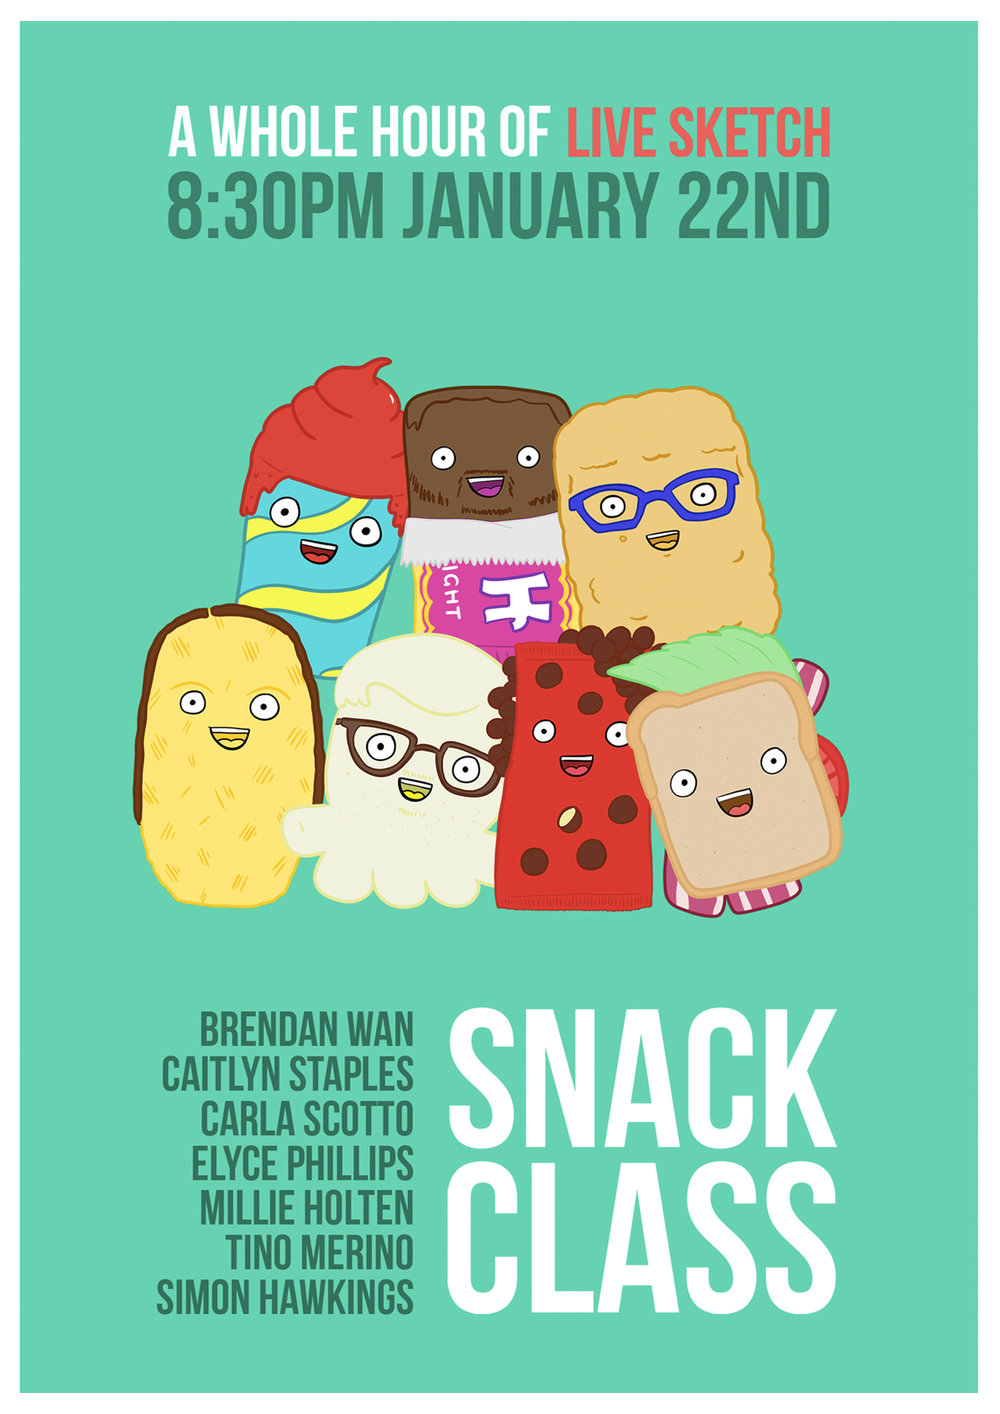 'Snack Class'    | Sketch show poster   (Illustrations by    Elyce Phillips   )